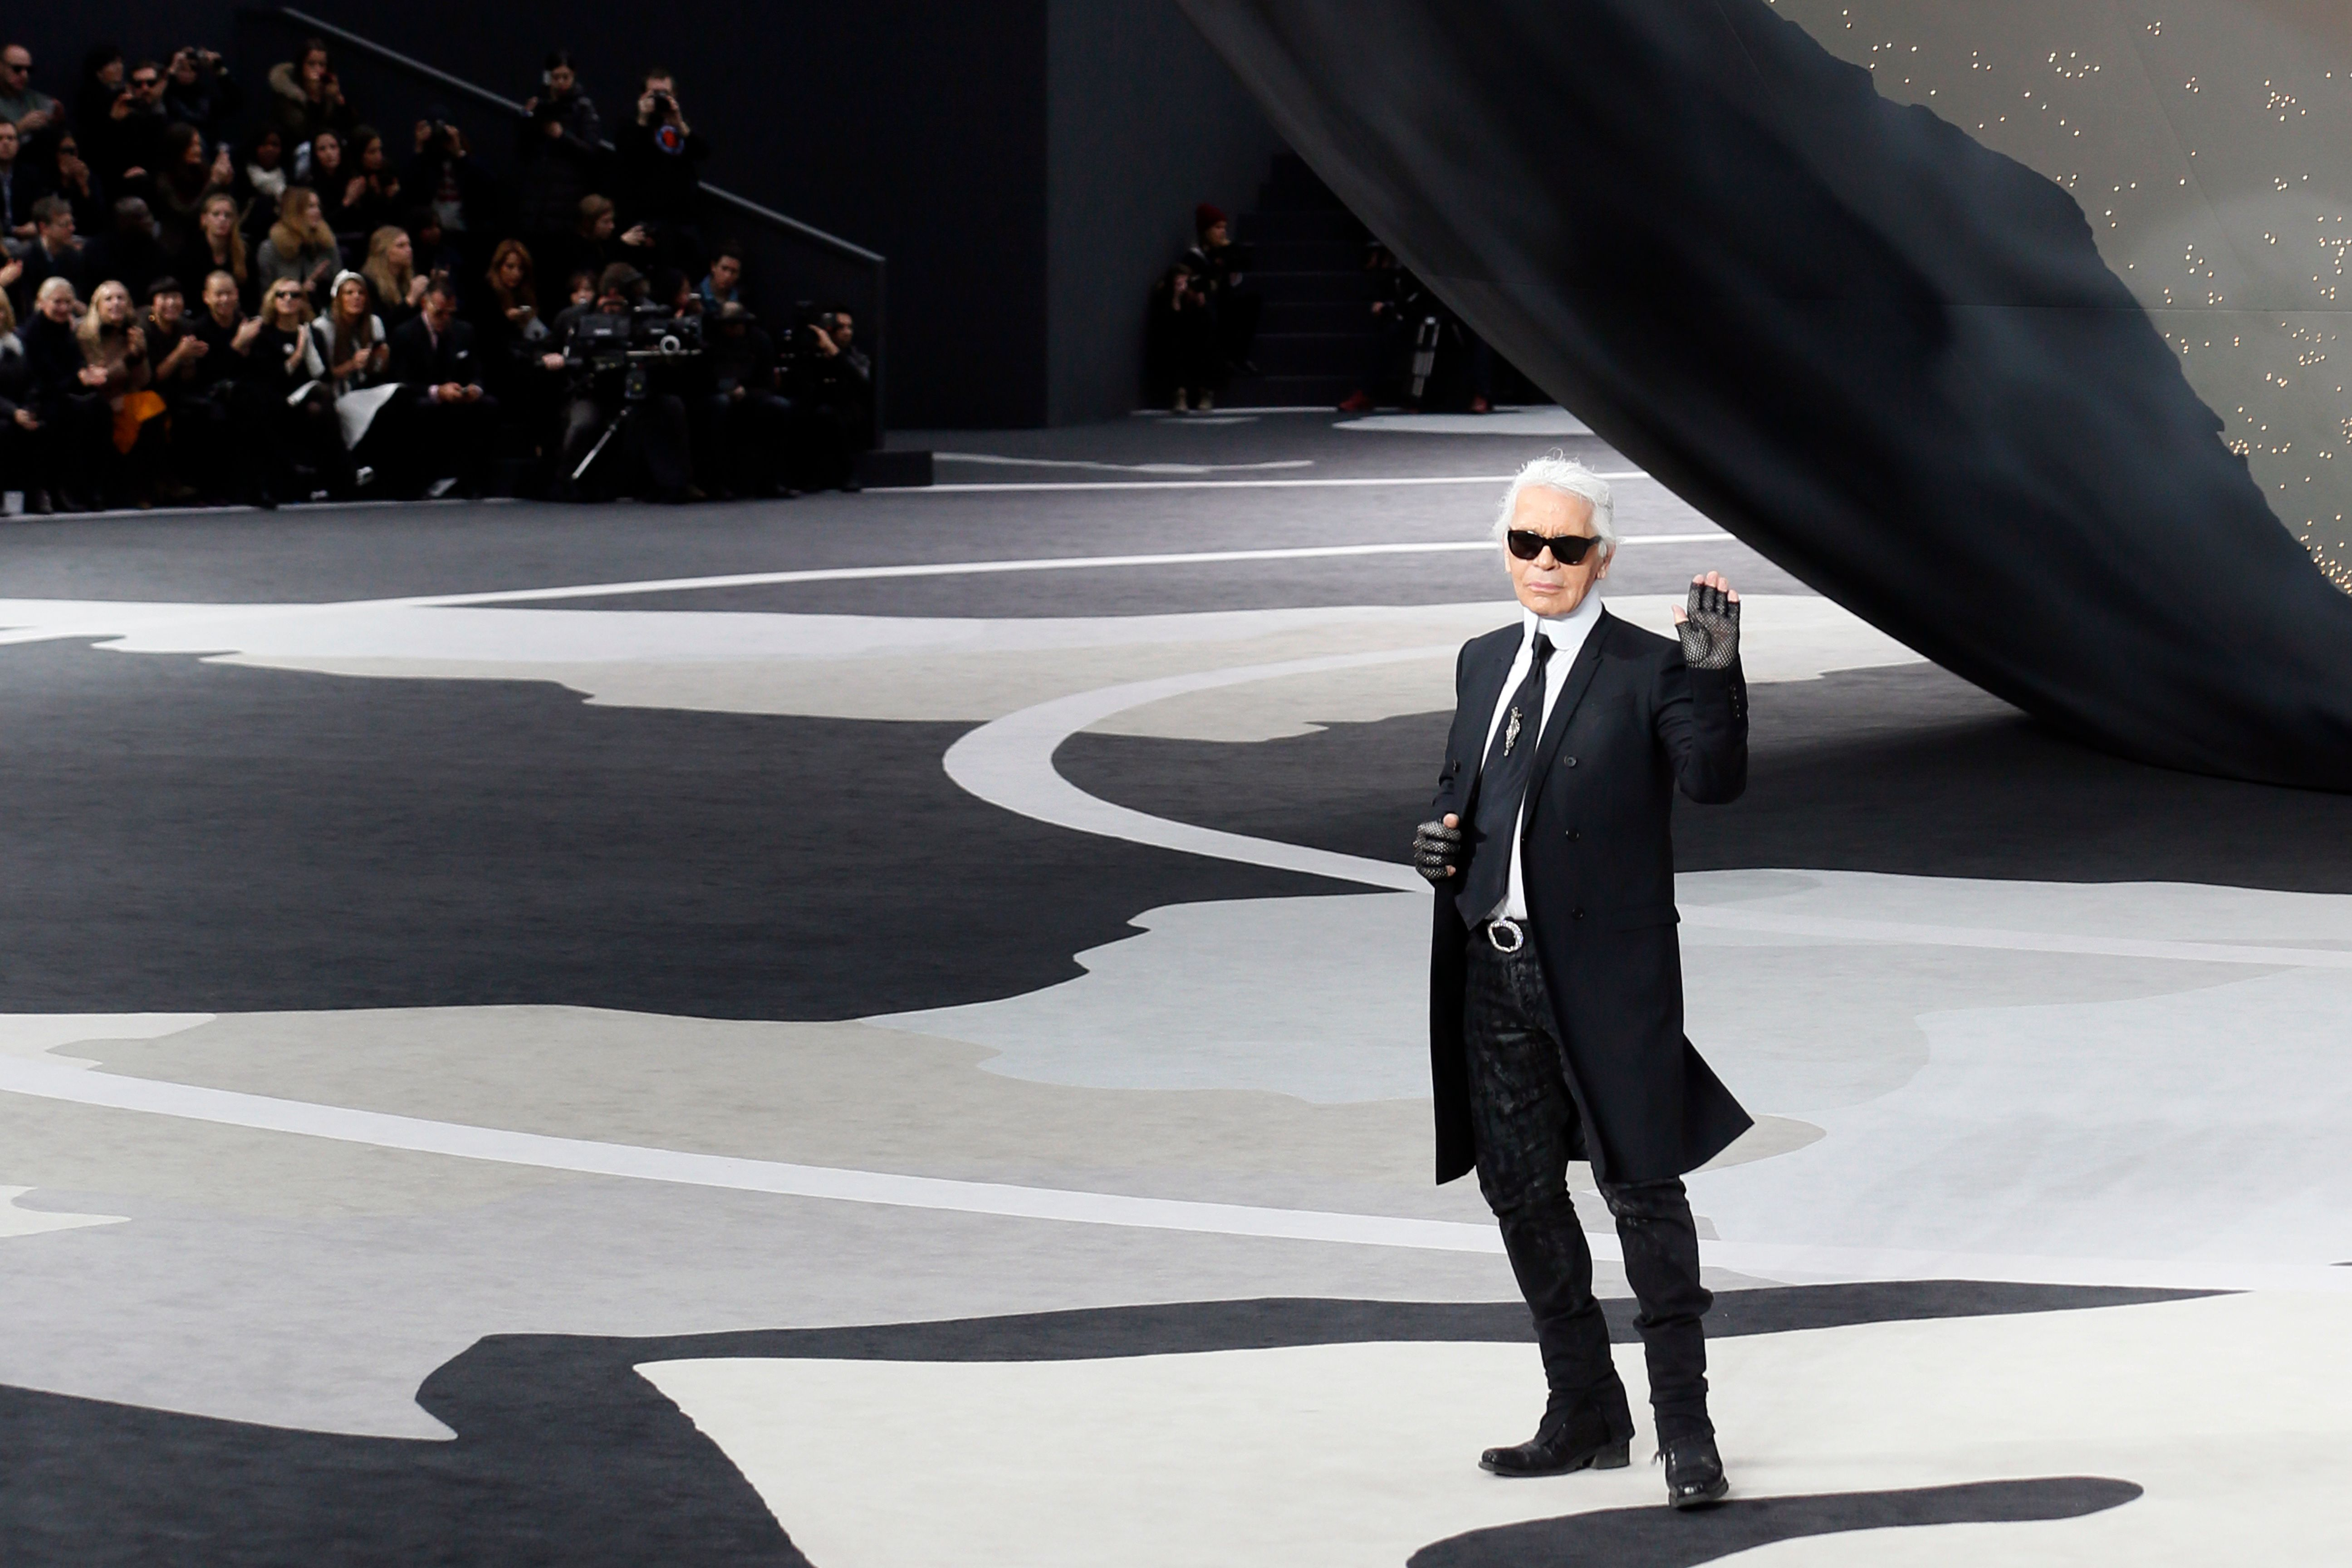 (FILES) In this file photo taken on March 5, 2013 German fashion designer Karl Lagerfeld  for Chanel acknowledges the public during the Fall/Winter 2013-2014 ready-to-wear collection show at the Grand Palais in Paris. - German fashion designer Karl Lagerfeld has died at the age of 85, it was announced on February 19, 2019. (Photo by PATRICK KOVARIK / AFP)